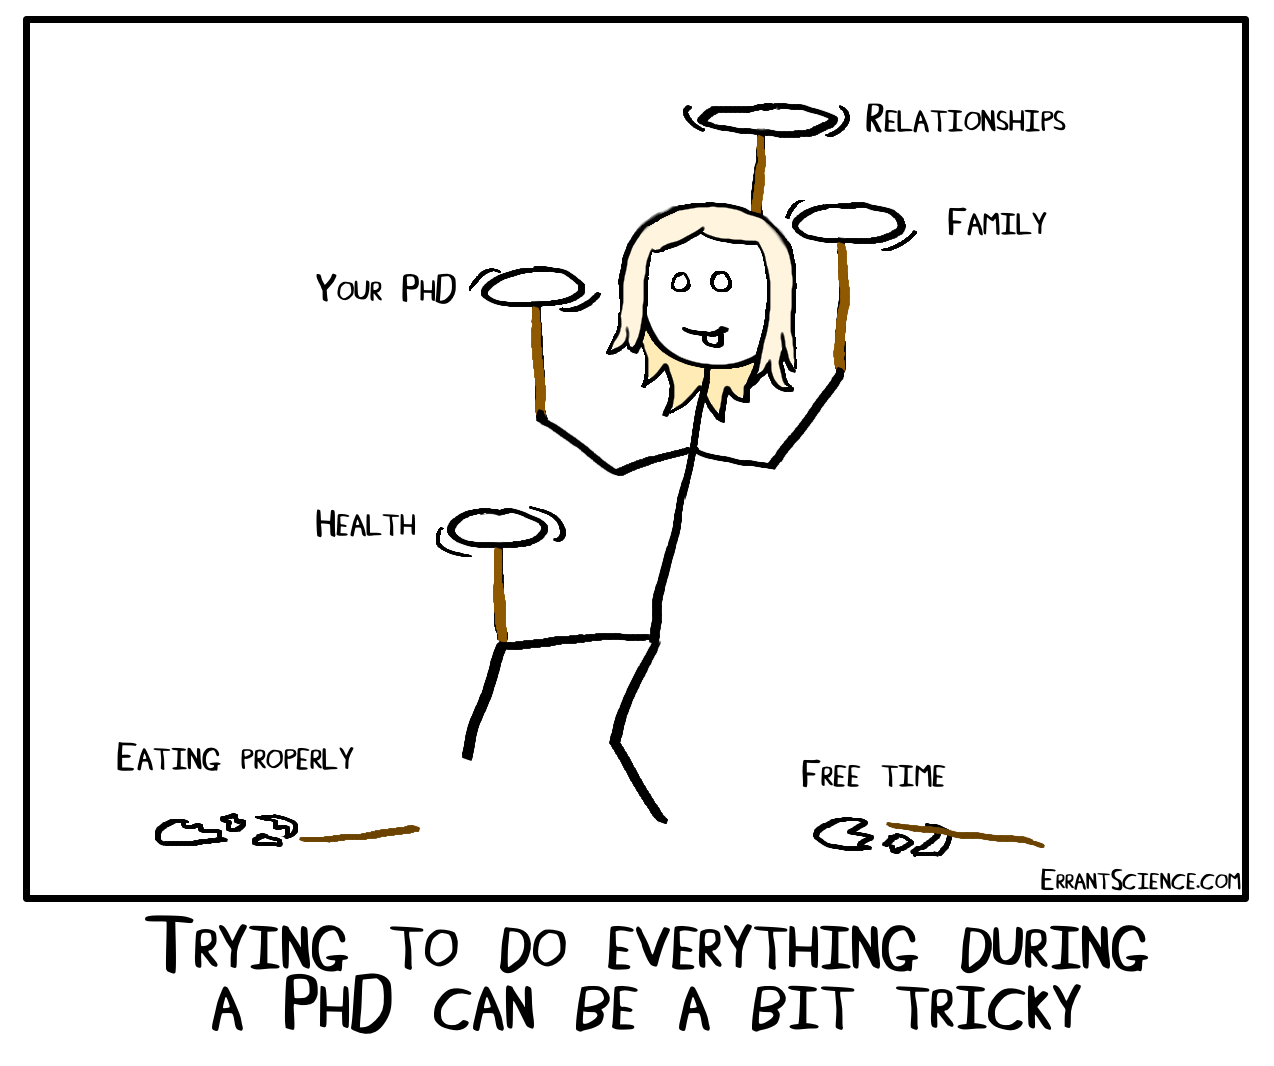 https://errantscience.com/wp-content/uploads/Spinning-PhD-plates-2.png